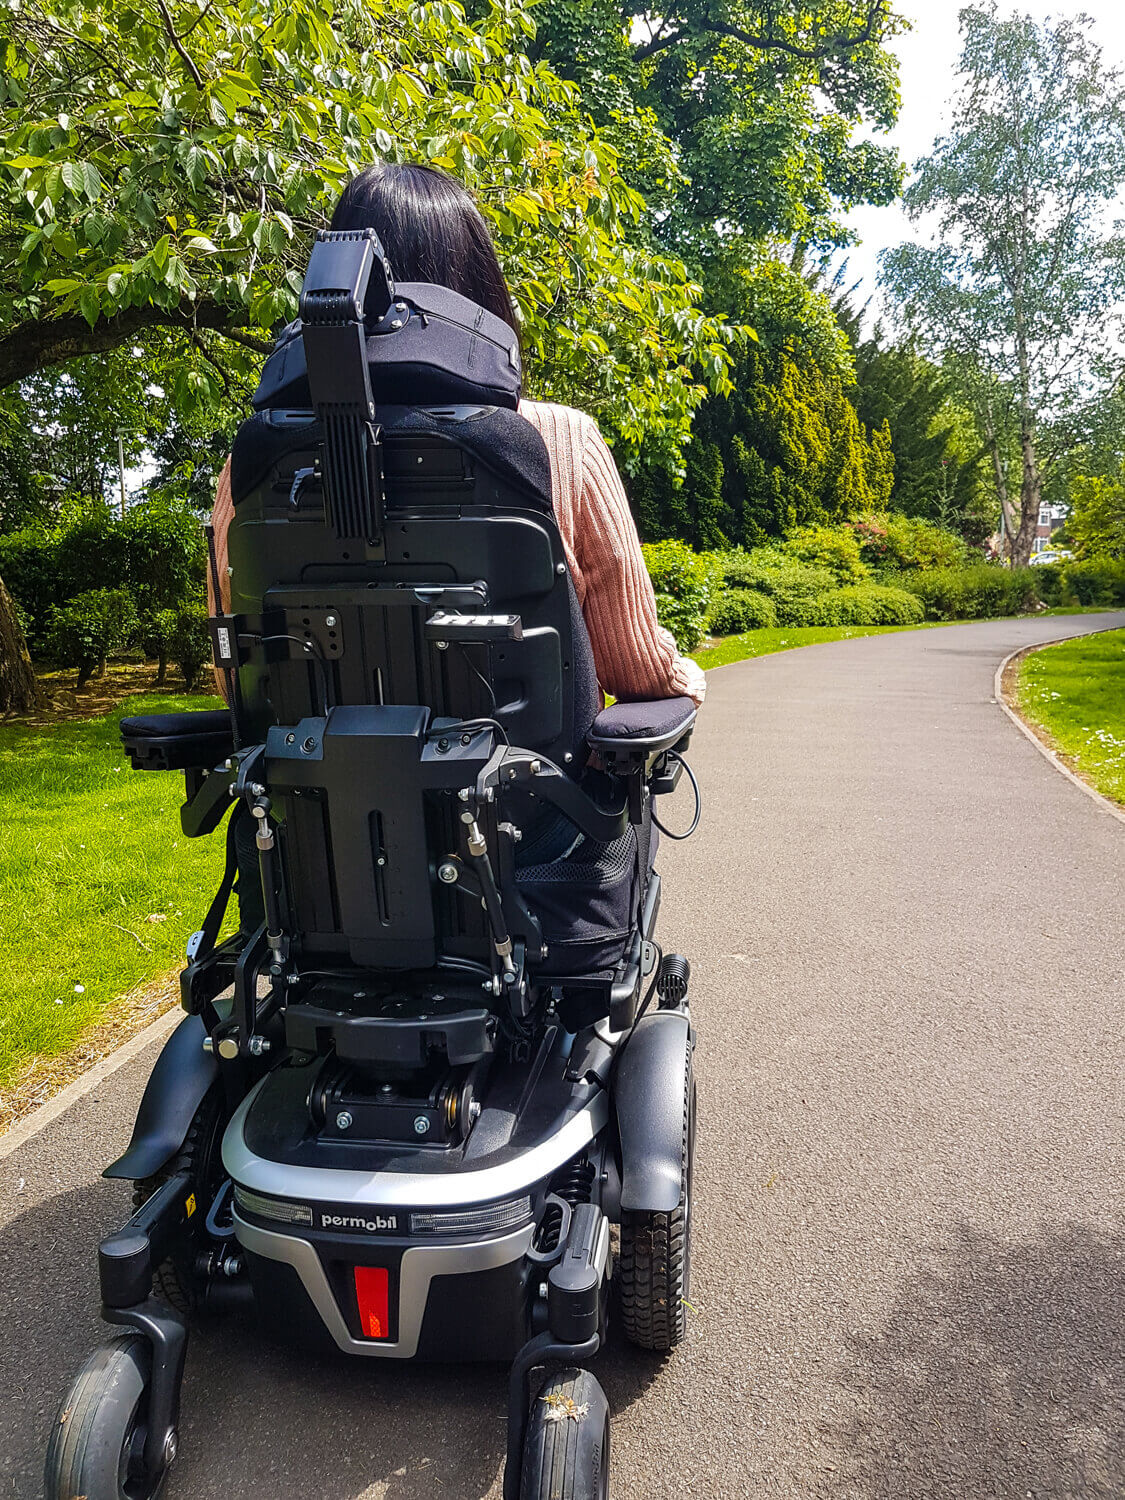 Emma, a wheelchair user sitting in a black and silver Permobil M3 wheelchair in a park. Emma has her back towards the camera showing the back of the wheelchair. She is driving along a wheelchair accessible path in a park. Trees are in the background.